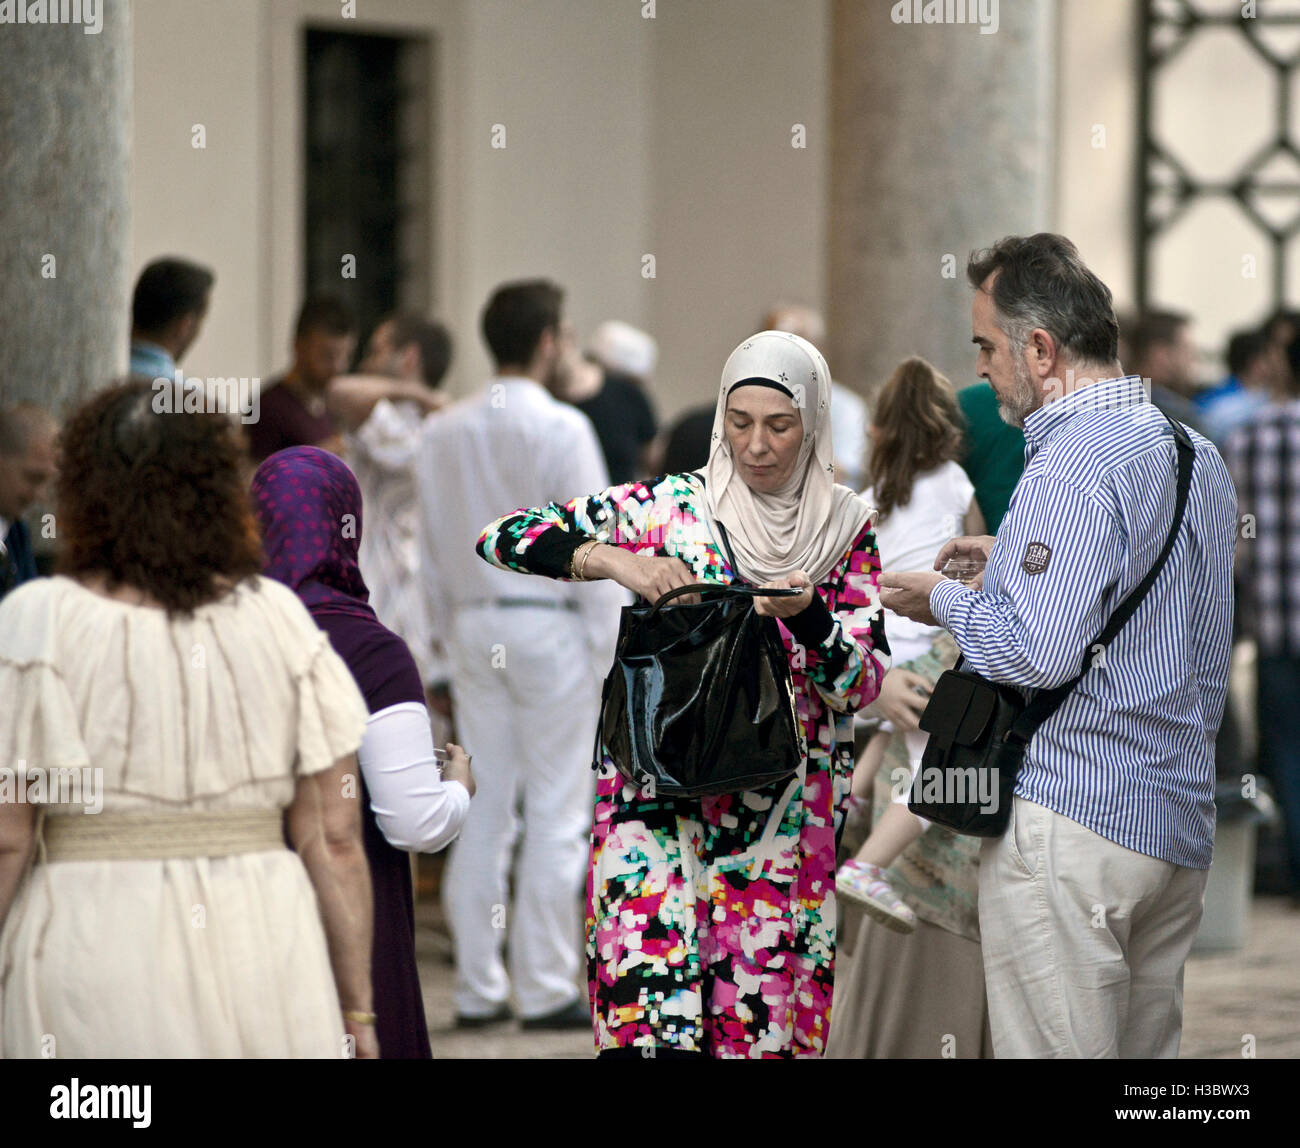 Muslim people celebrating Ramadan in the Gazi Husrev-beg Mosque, Sarajevo, Bosnia and Herzegovina - Stock Image